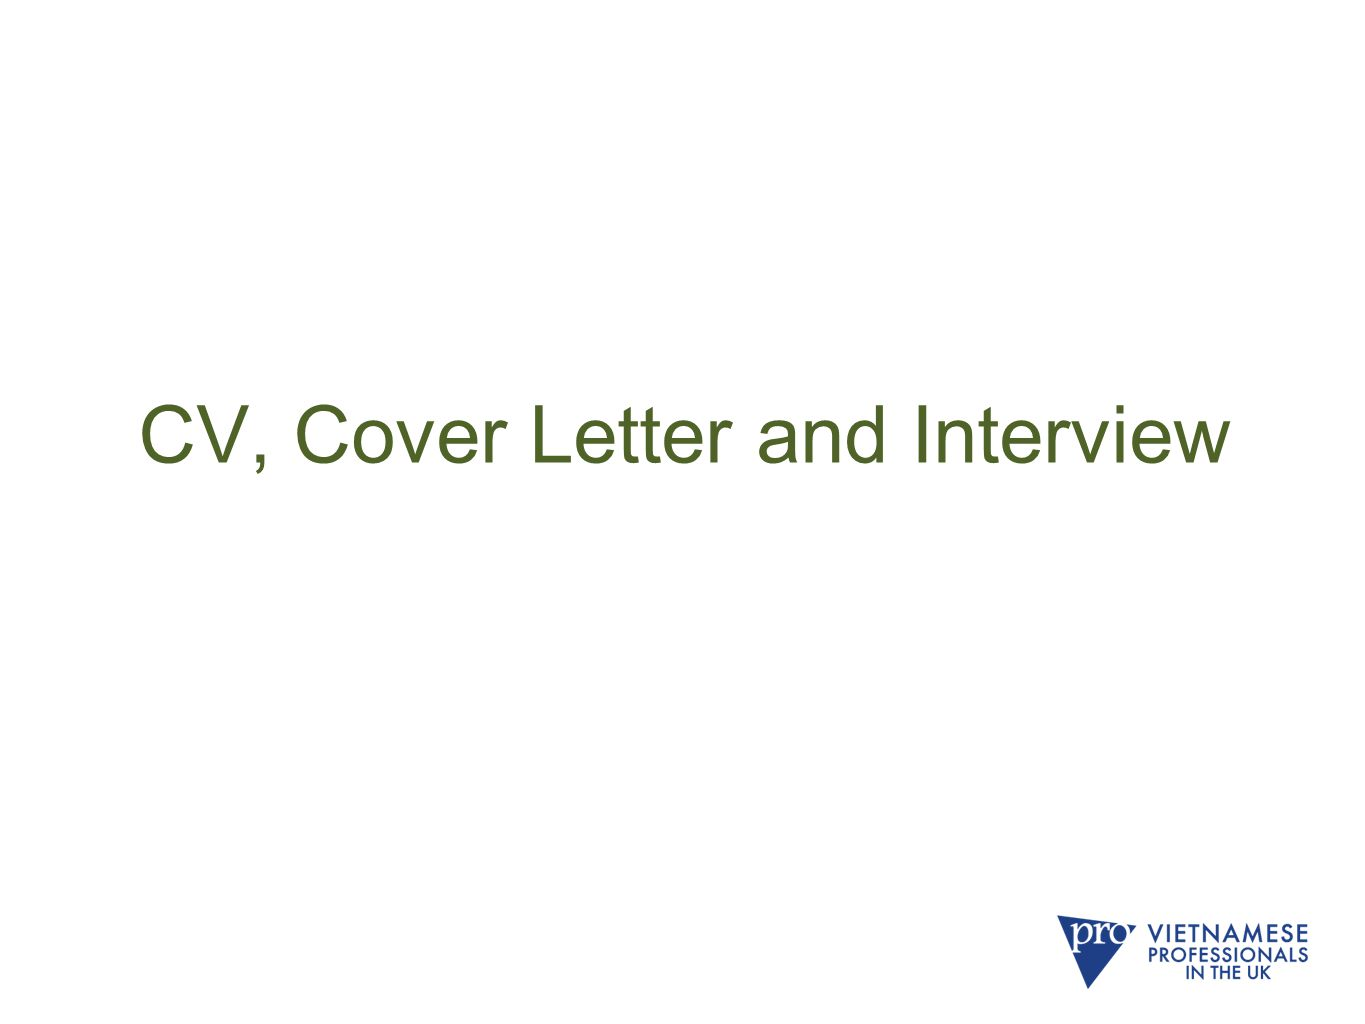 CV, Cover Letter and Interview